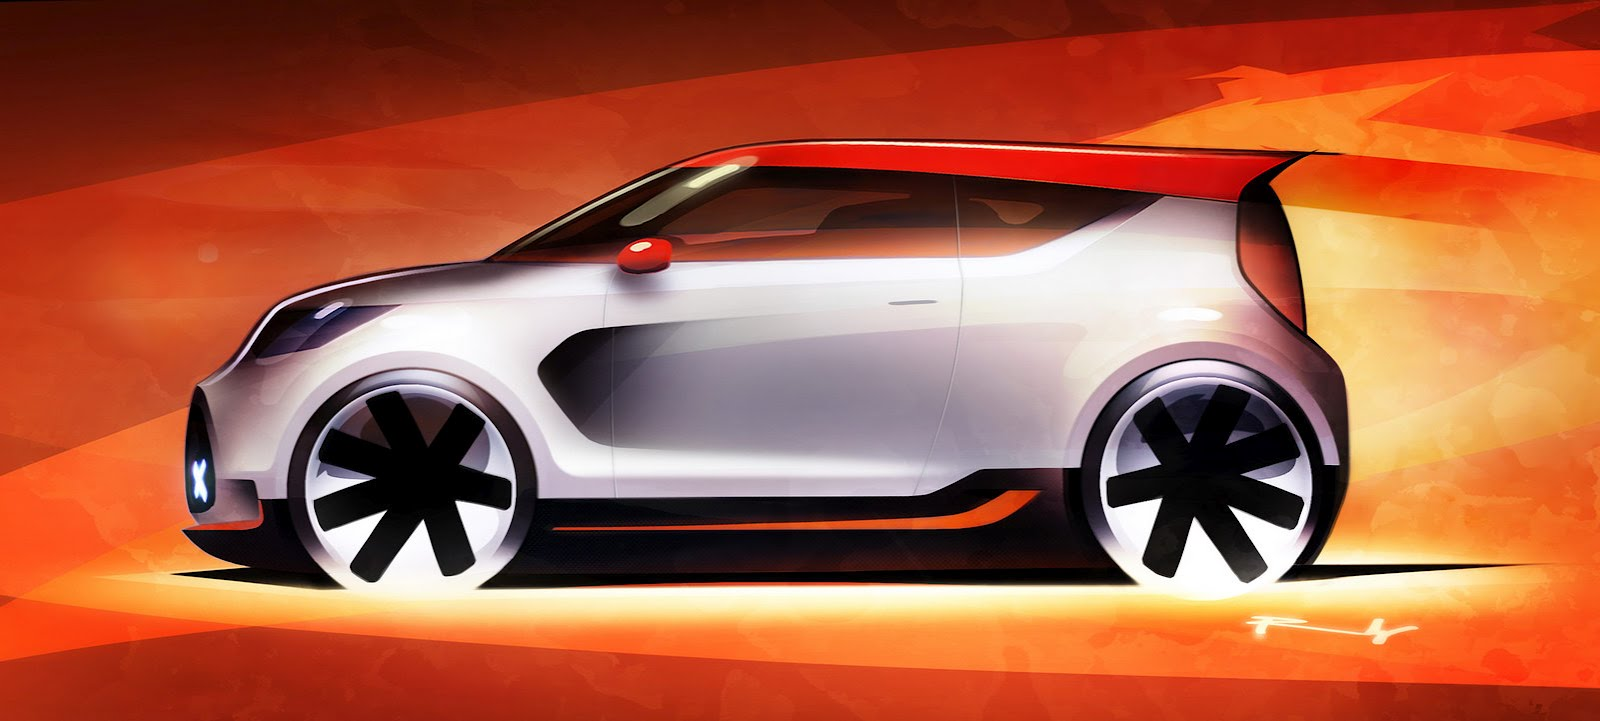 2012 Kia Trackster Concept 2012 Trackster Concept to Be Launched by Kia